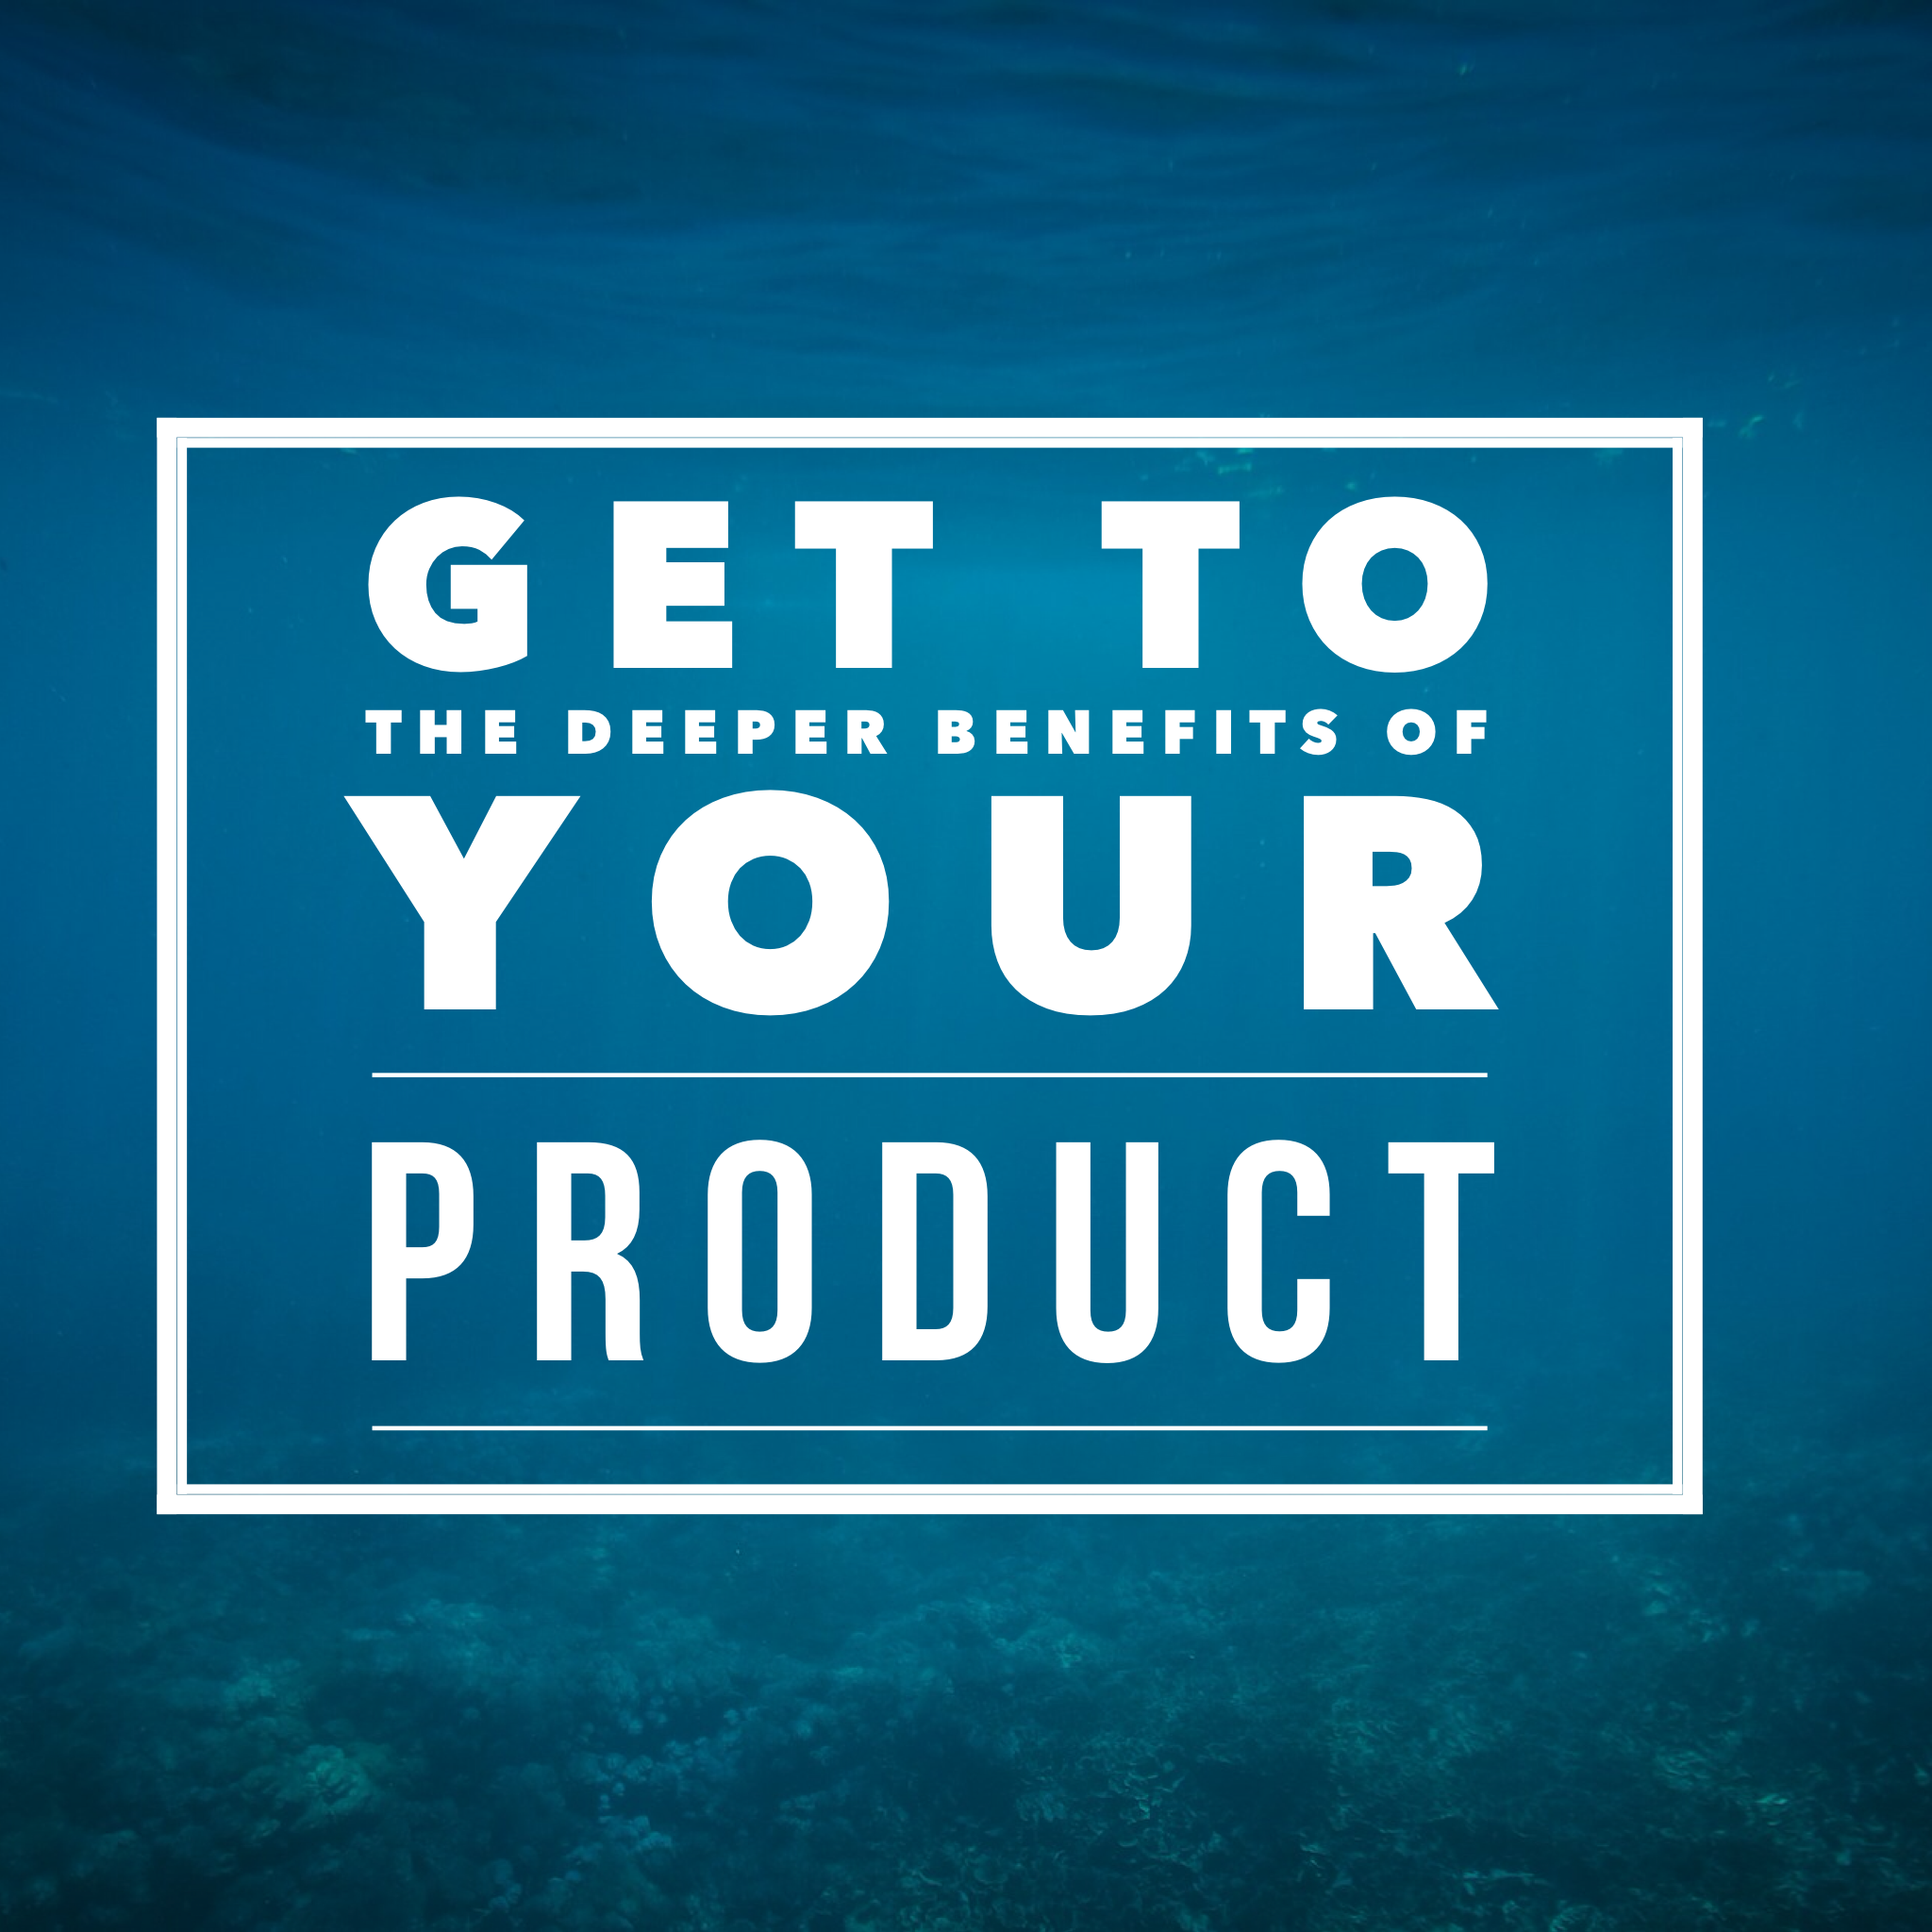 get to the deeper benefits of your product